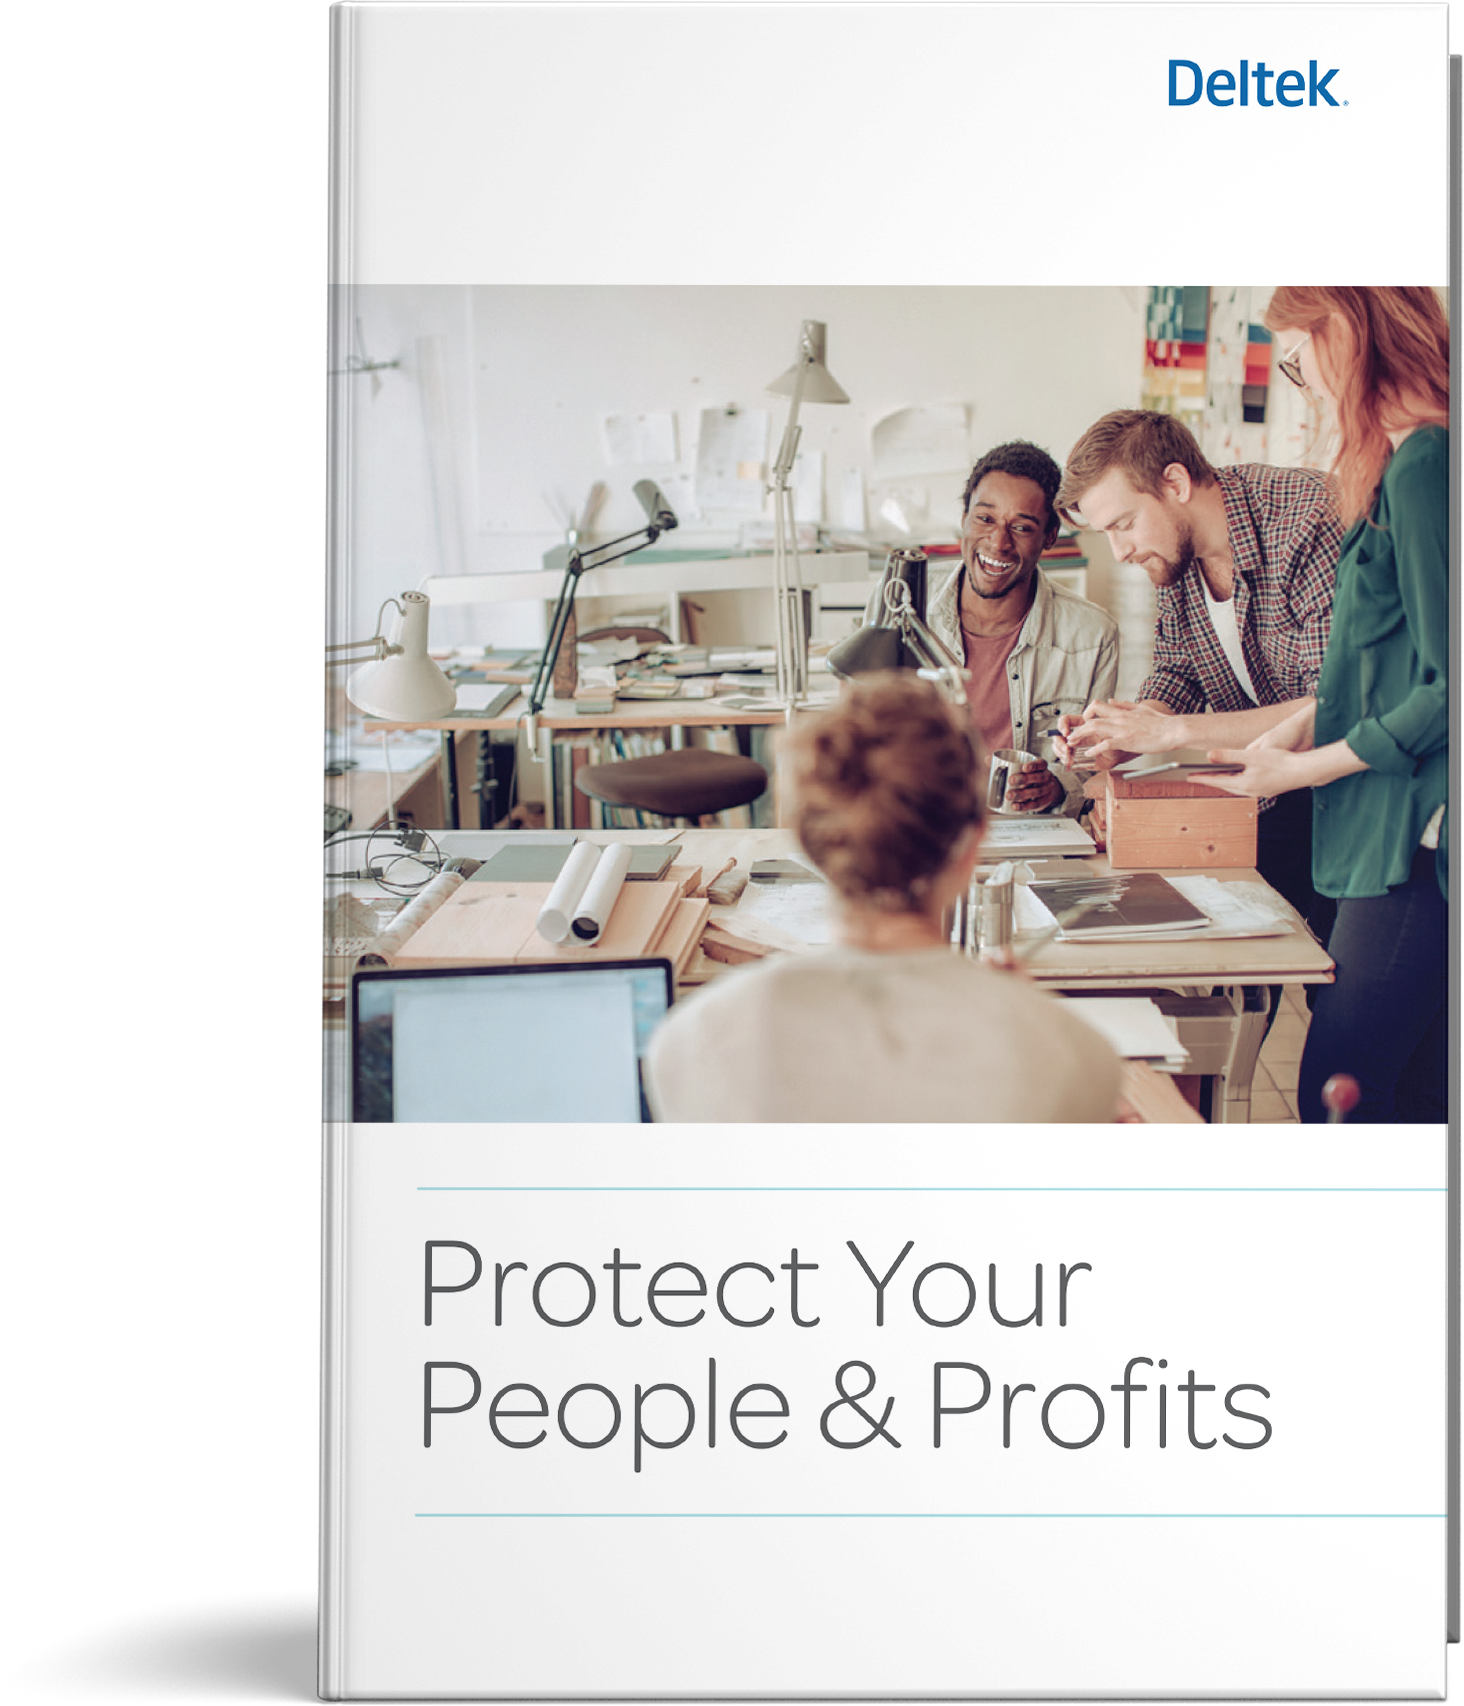 Protect Your People & Profits